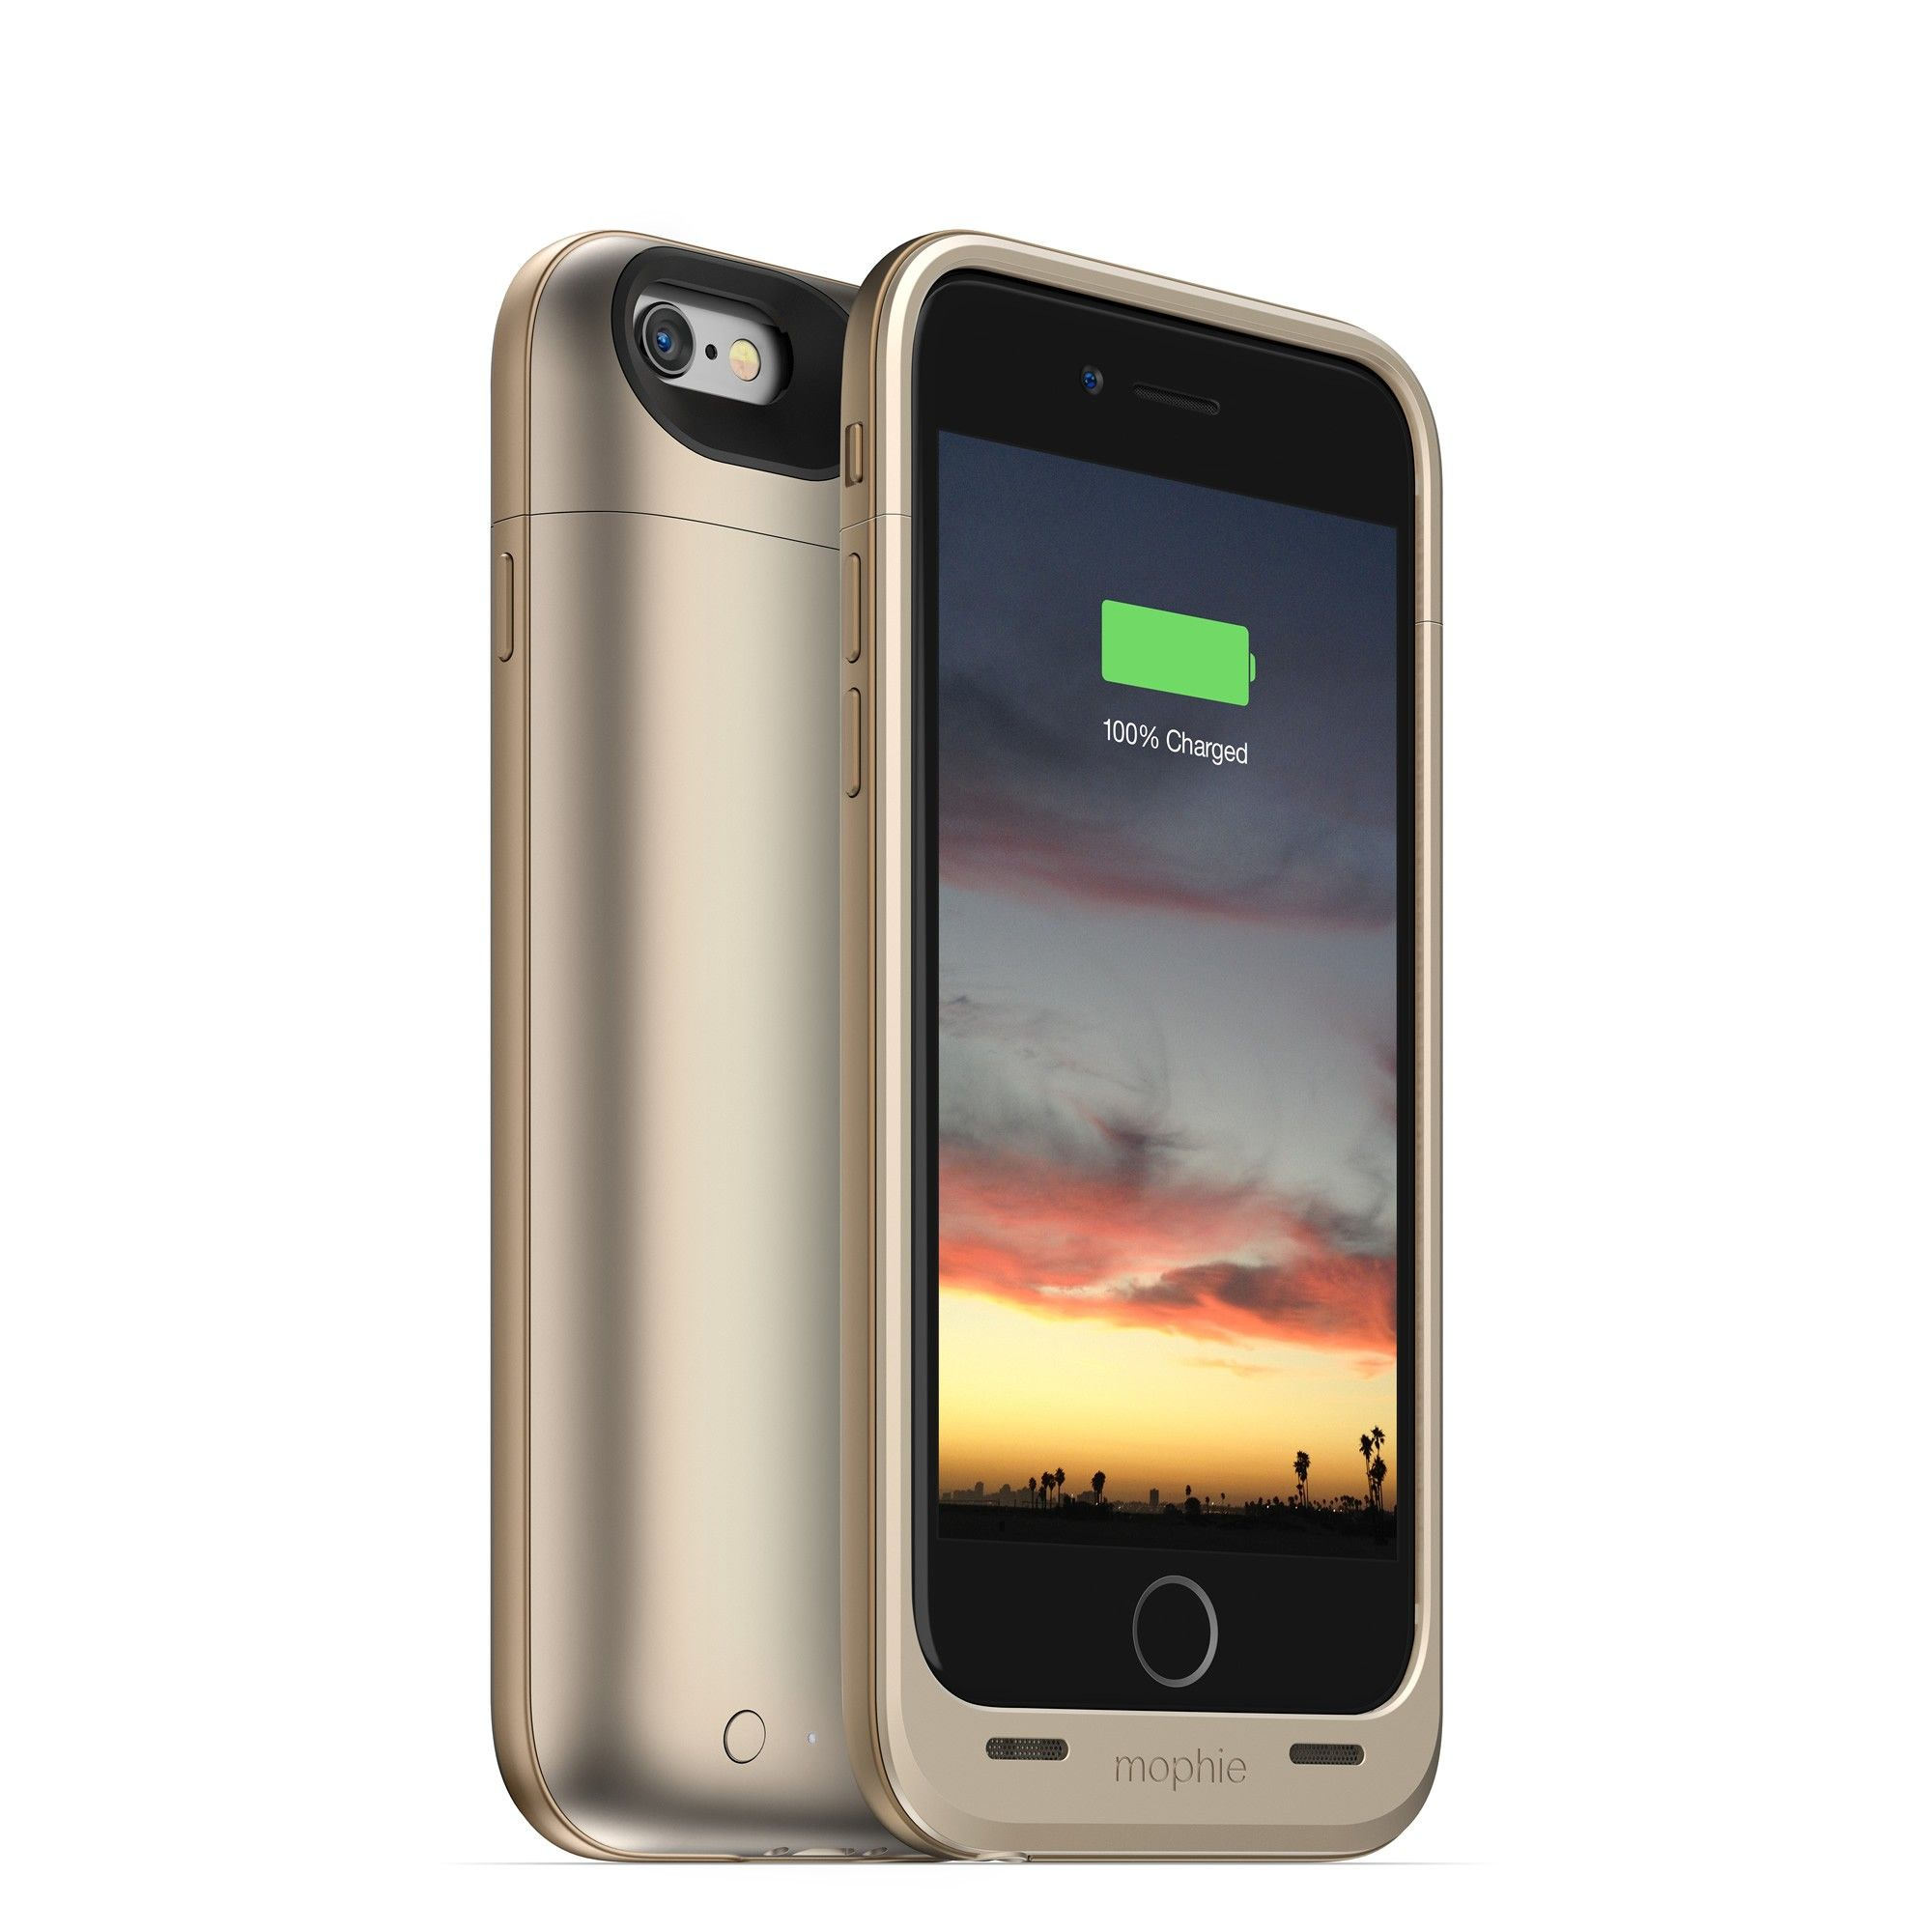 The juice pack air is a slim iPhone 6s / 6 battery case